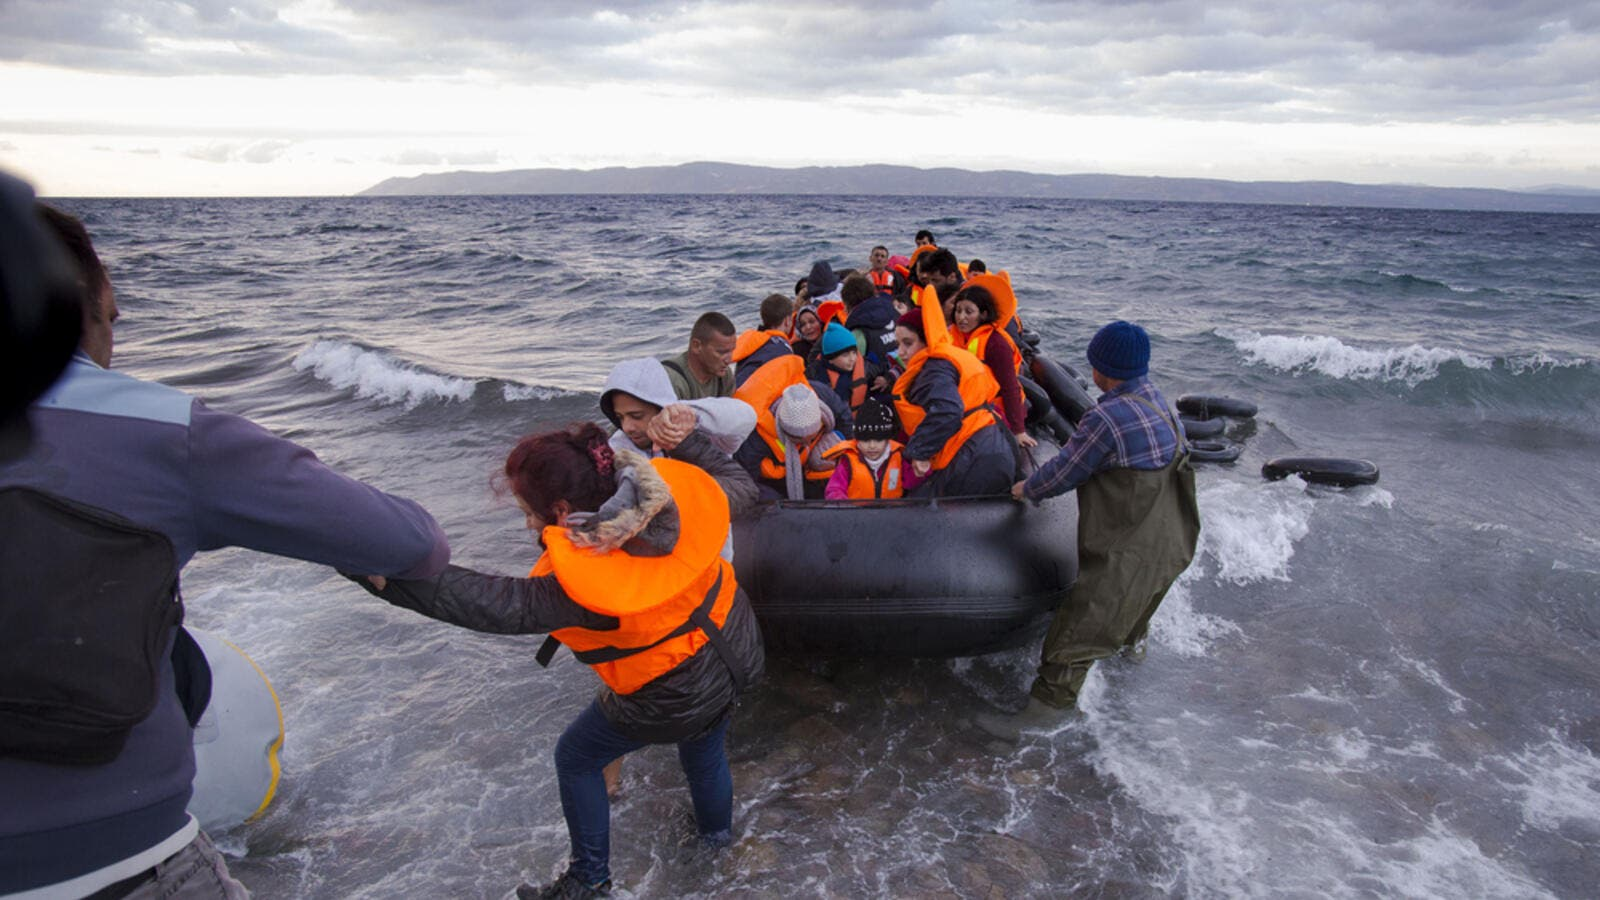 Syrian migrants arrive from Turkey on boat through sea with cold water near Molyvos, Lesbos on an overload dinghy. (Shutterstock/ File Photo)